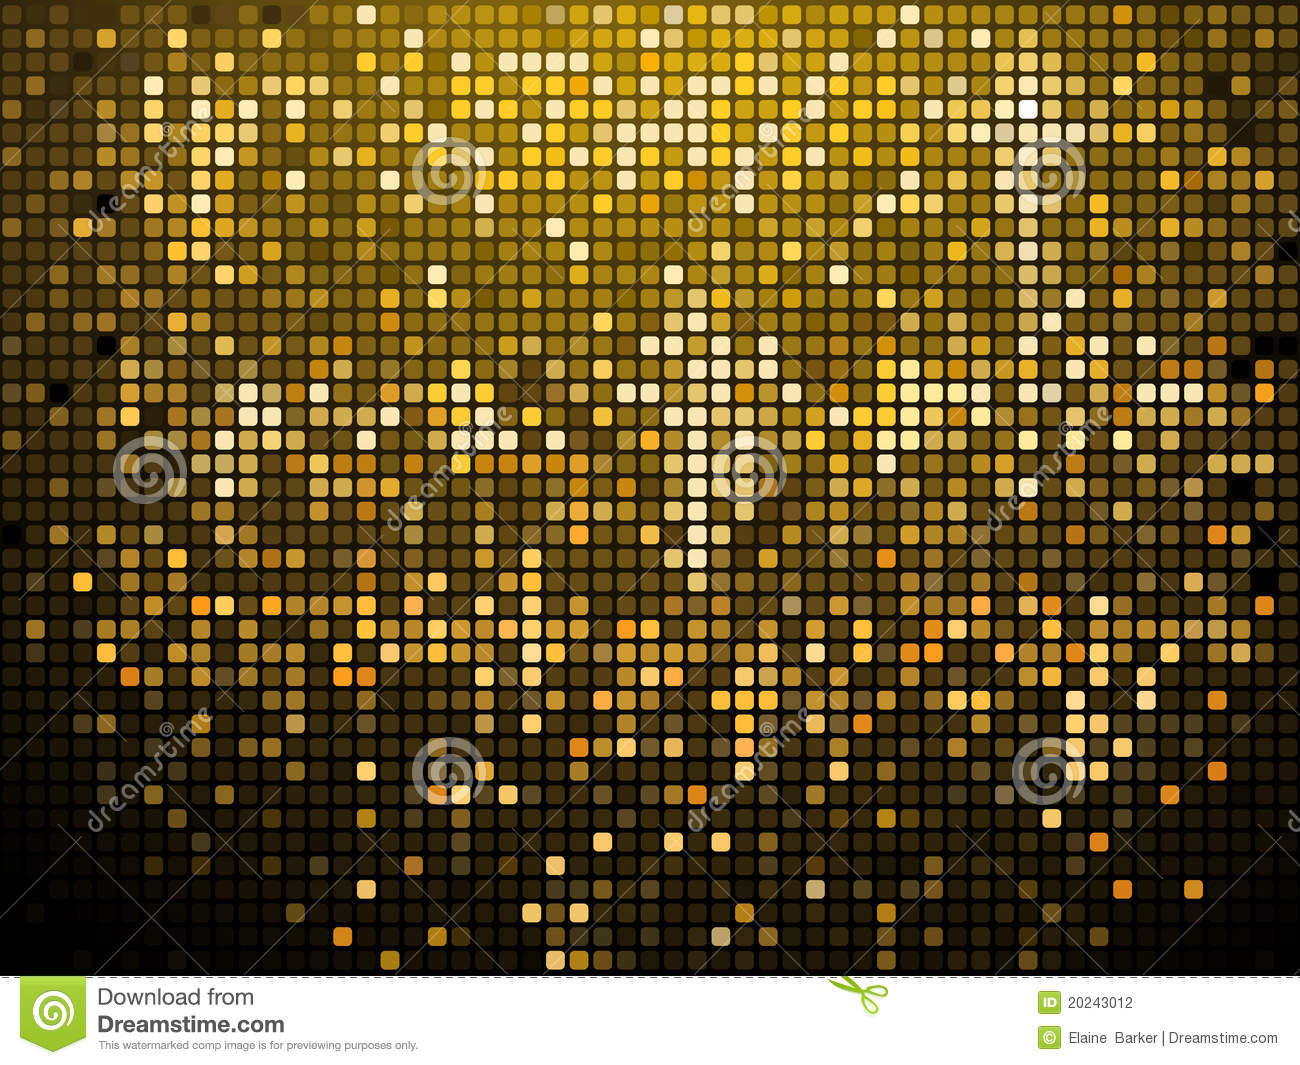 sparkling-gold-mosaic-background-20243012